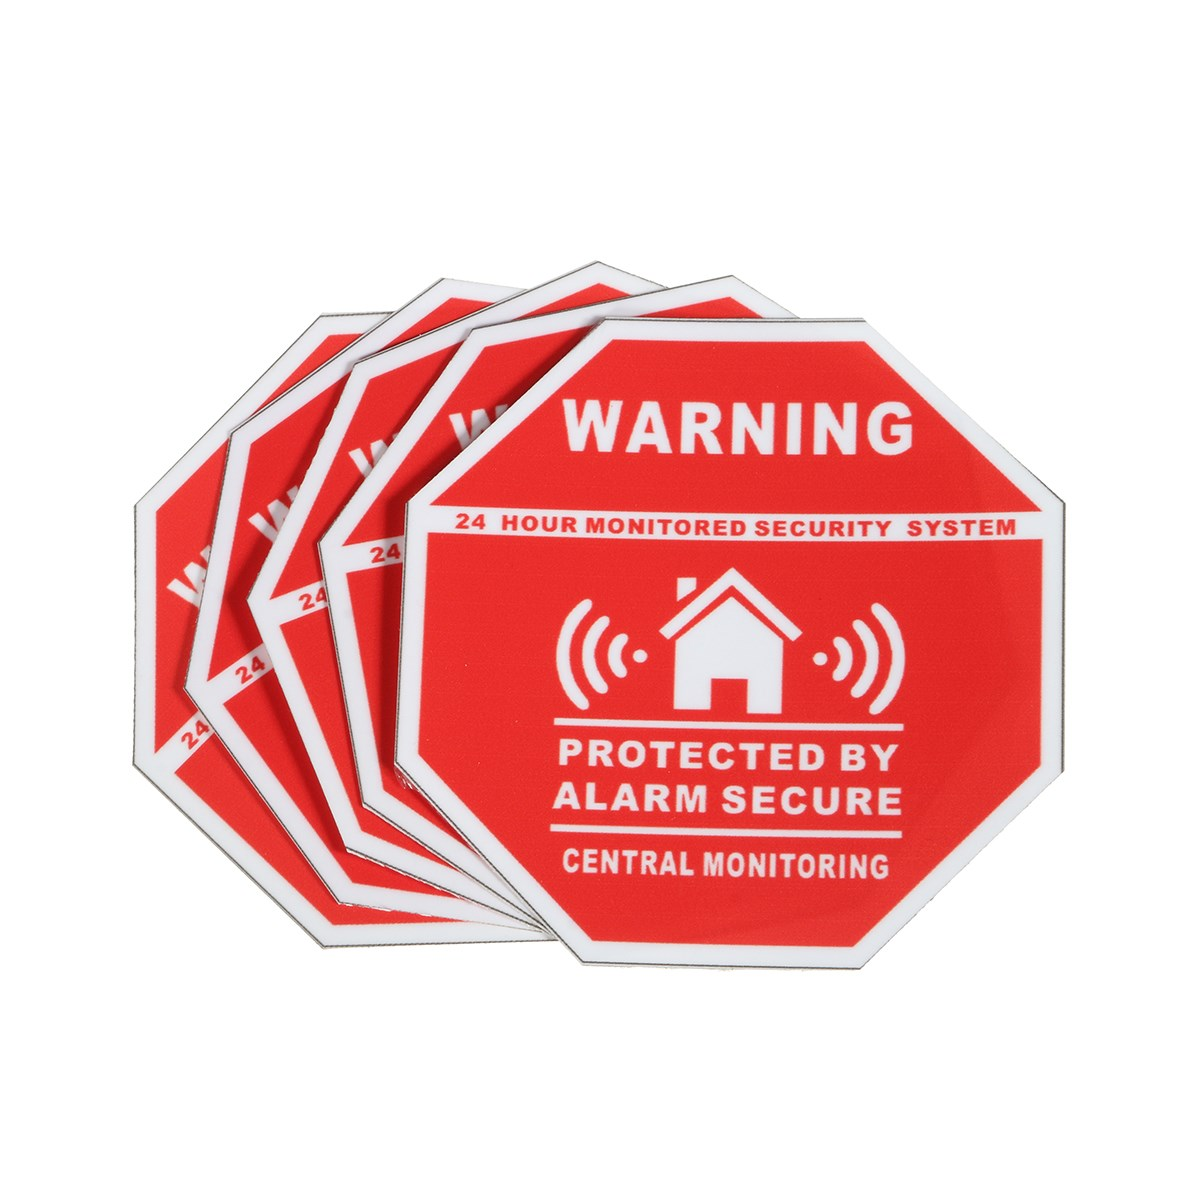 NEW 5Pcs Home House Alarm Security Stickers / Decals Signs for Windows & Doors NewNEW 5Pcs Home House Alarm Security Stickers / Decals Signs for Windows & Doors New